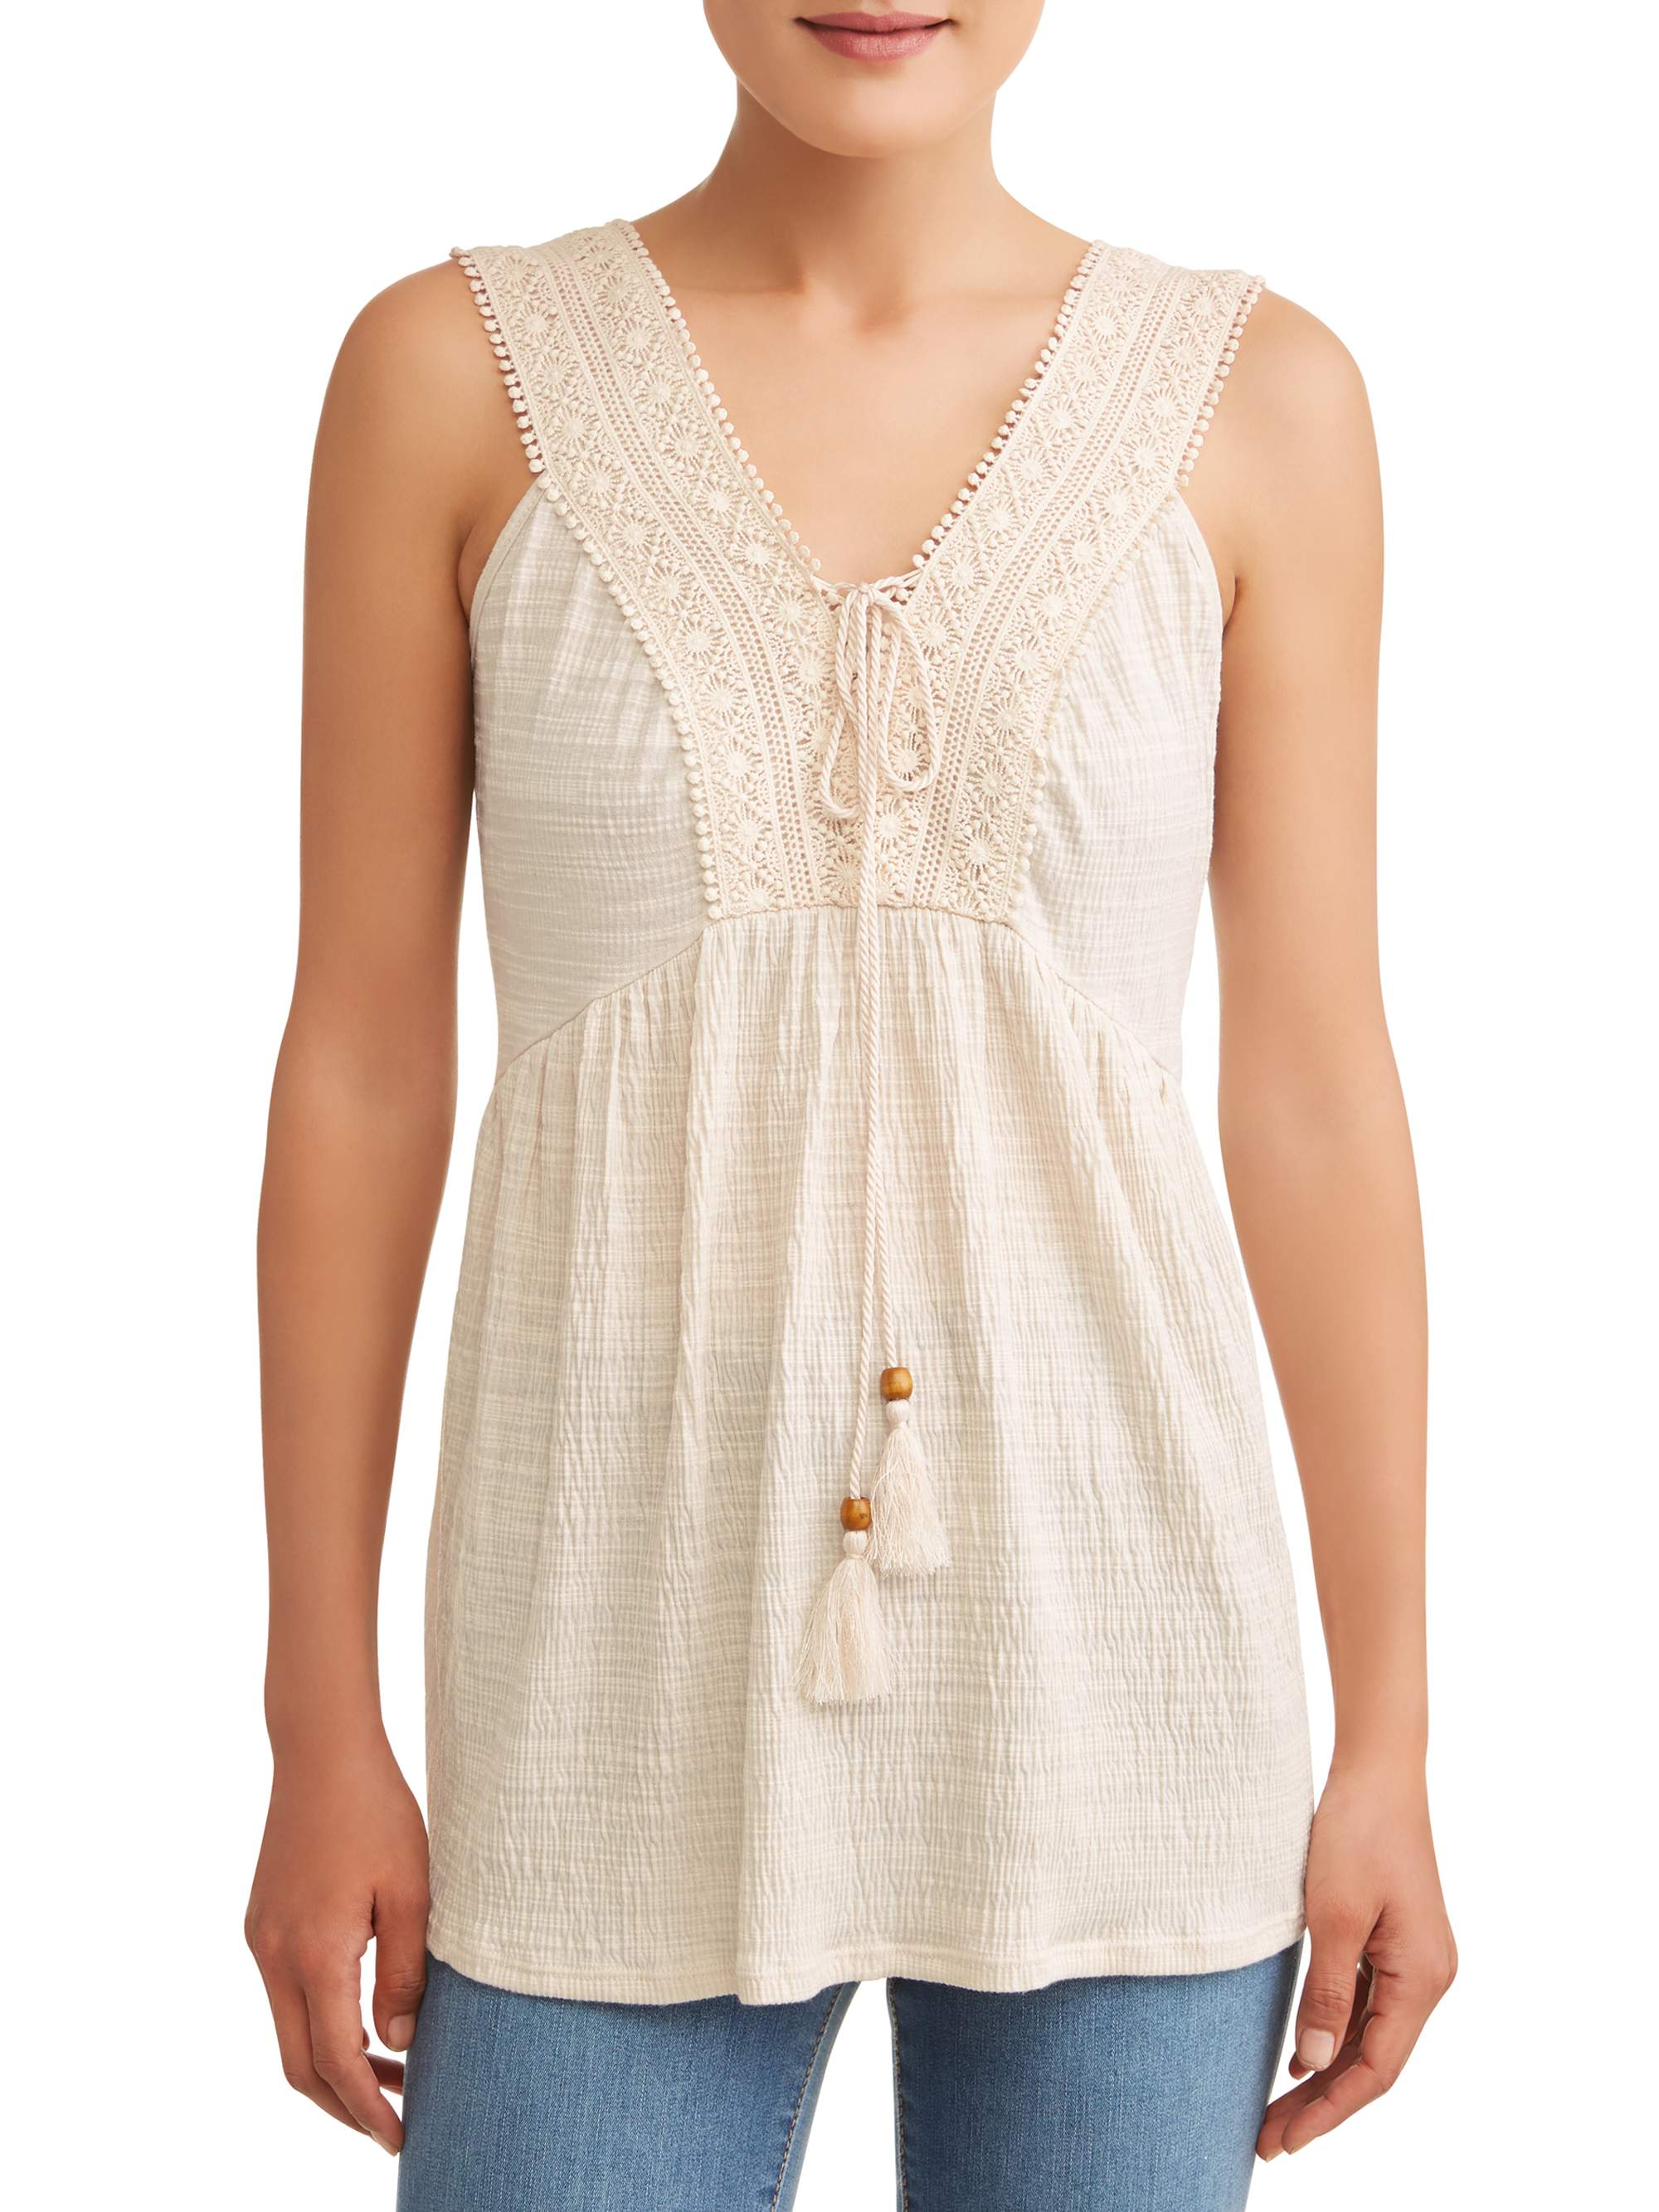 Women's Textured Lace Up Tank Top